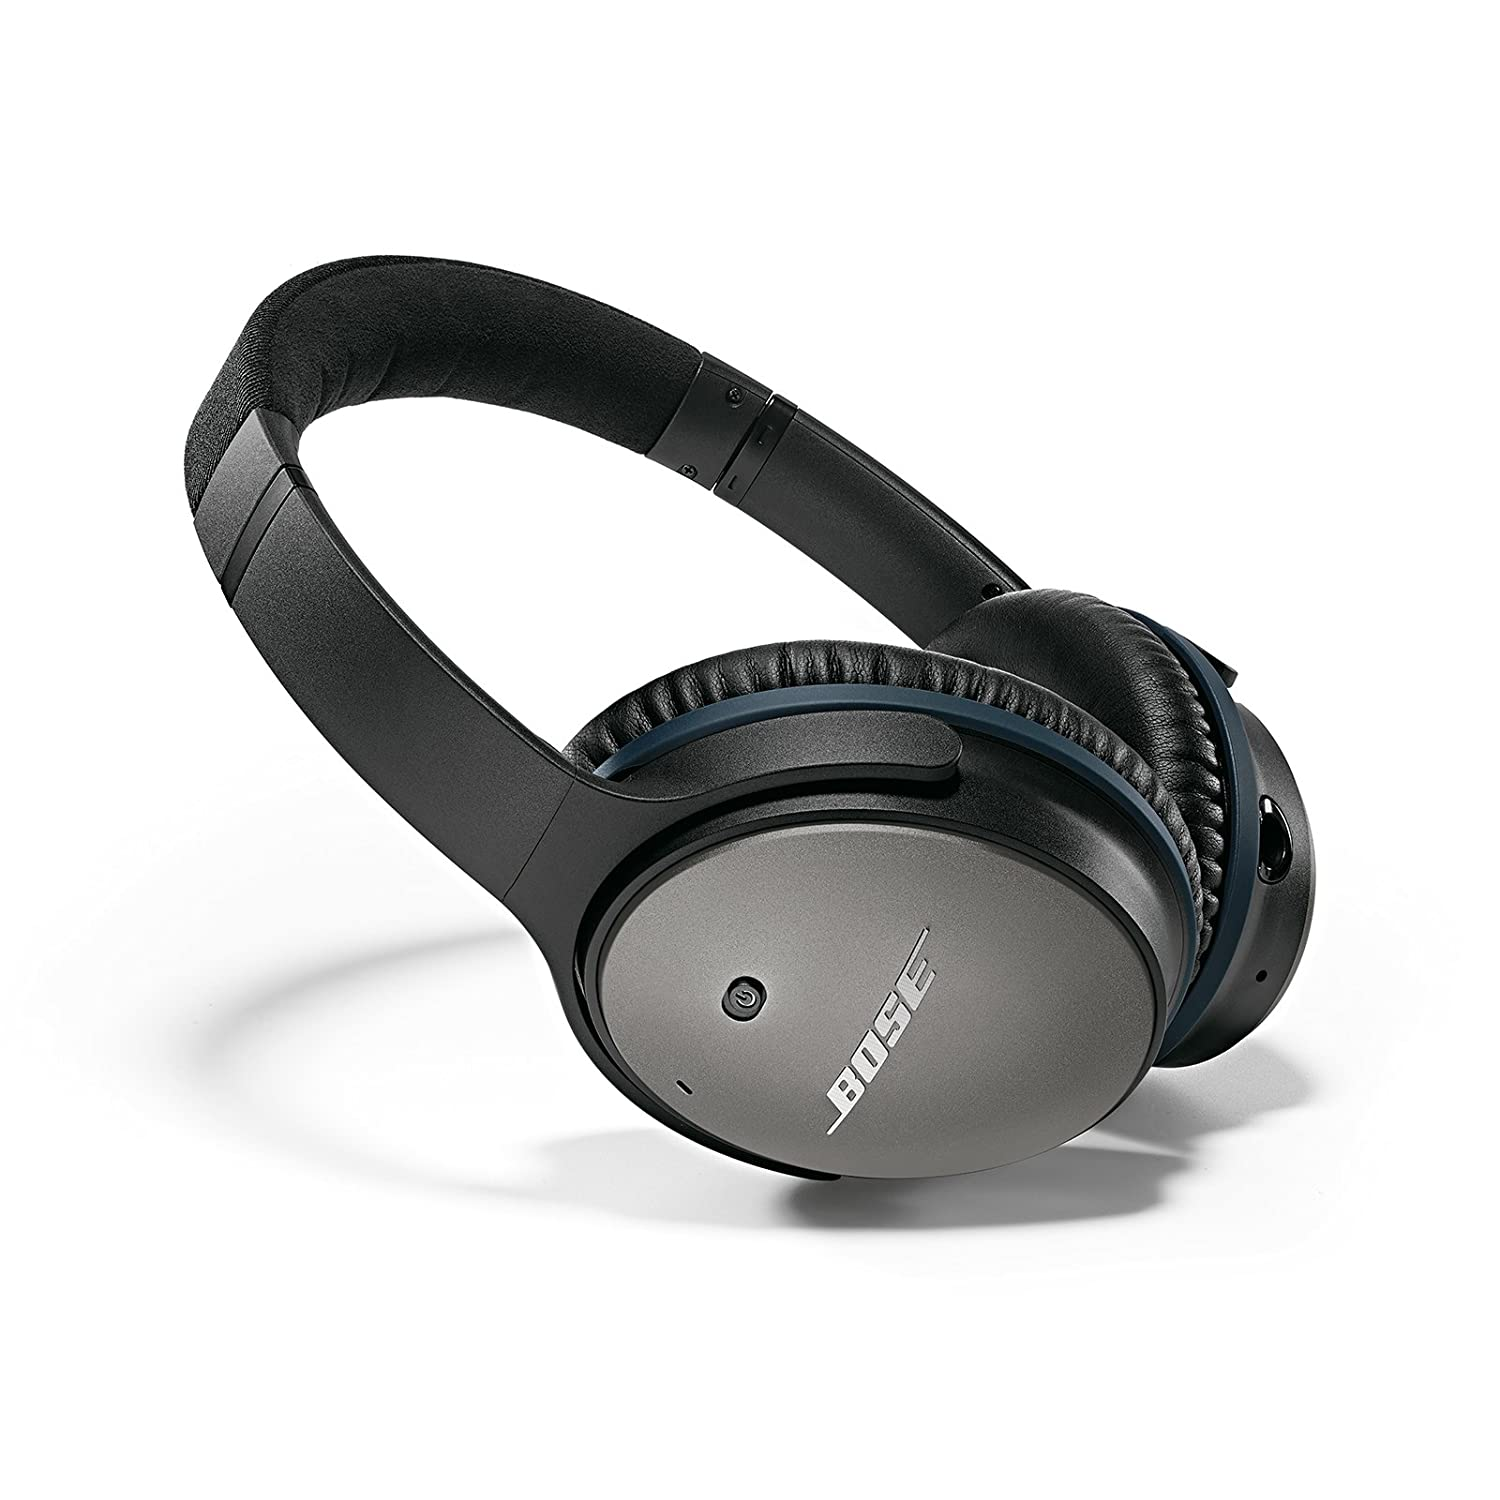 Bose QuietComfort 25 Acoustic Noise Cancelling Headphones for Android devices, Black【並行輸入品】 B00VW7U8X4